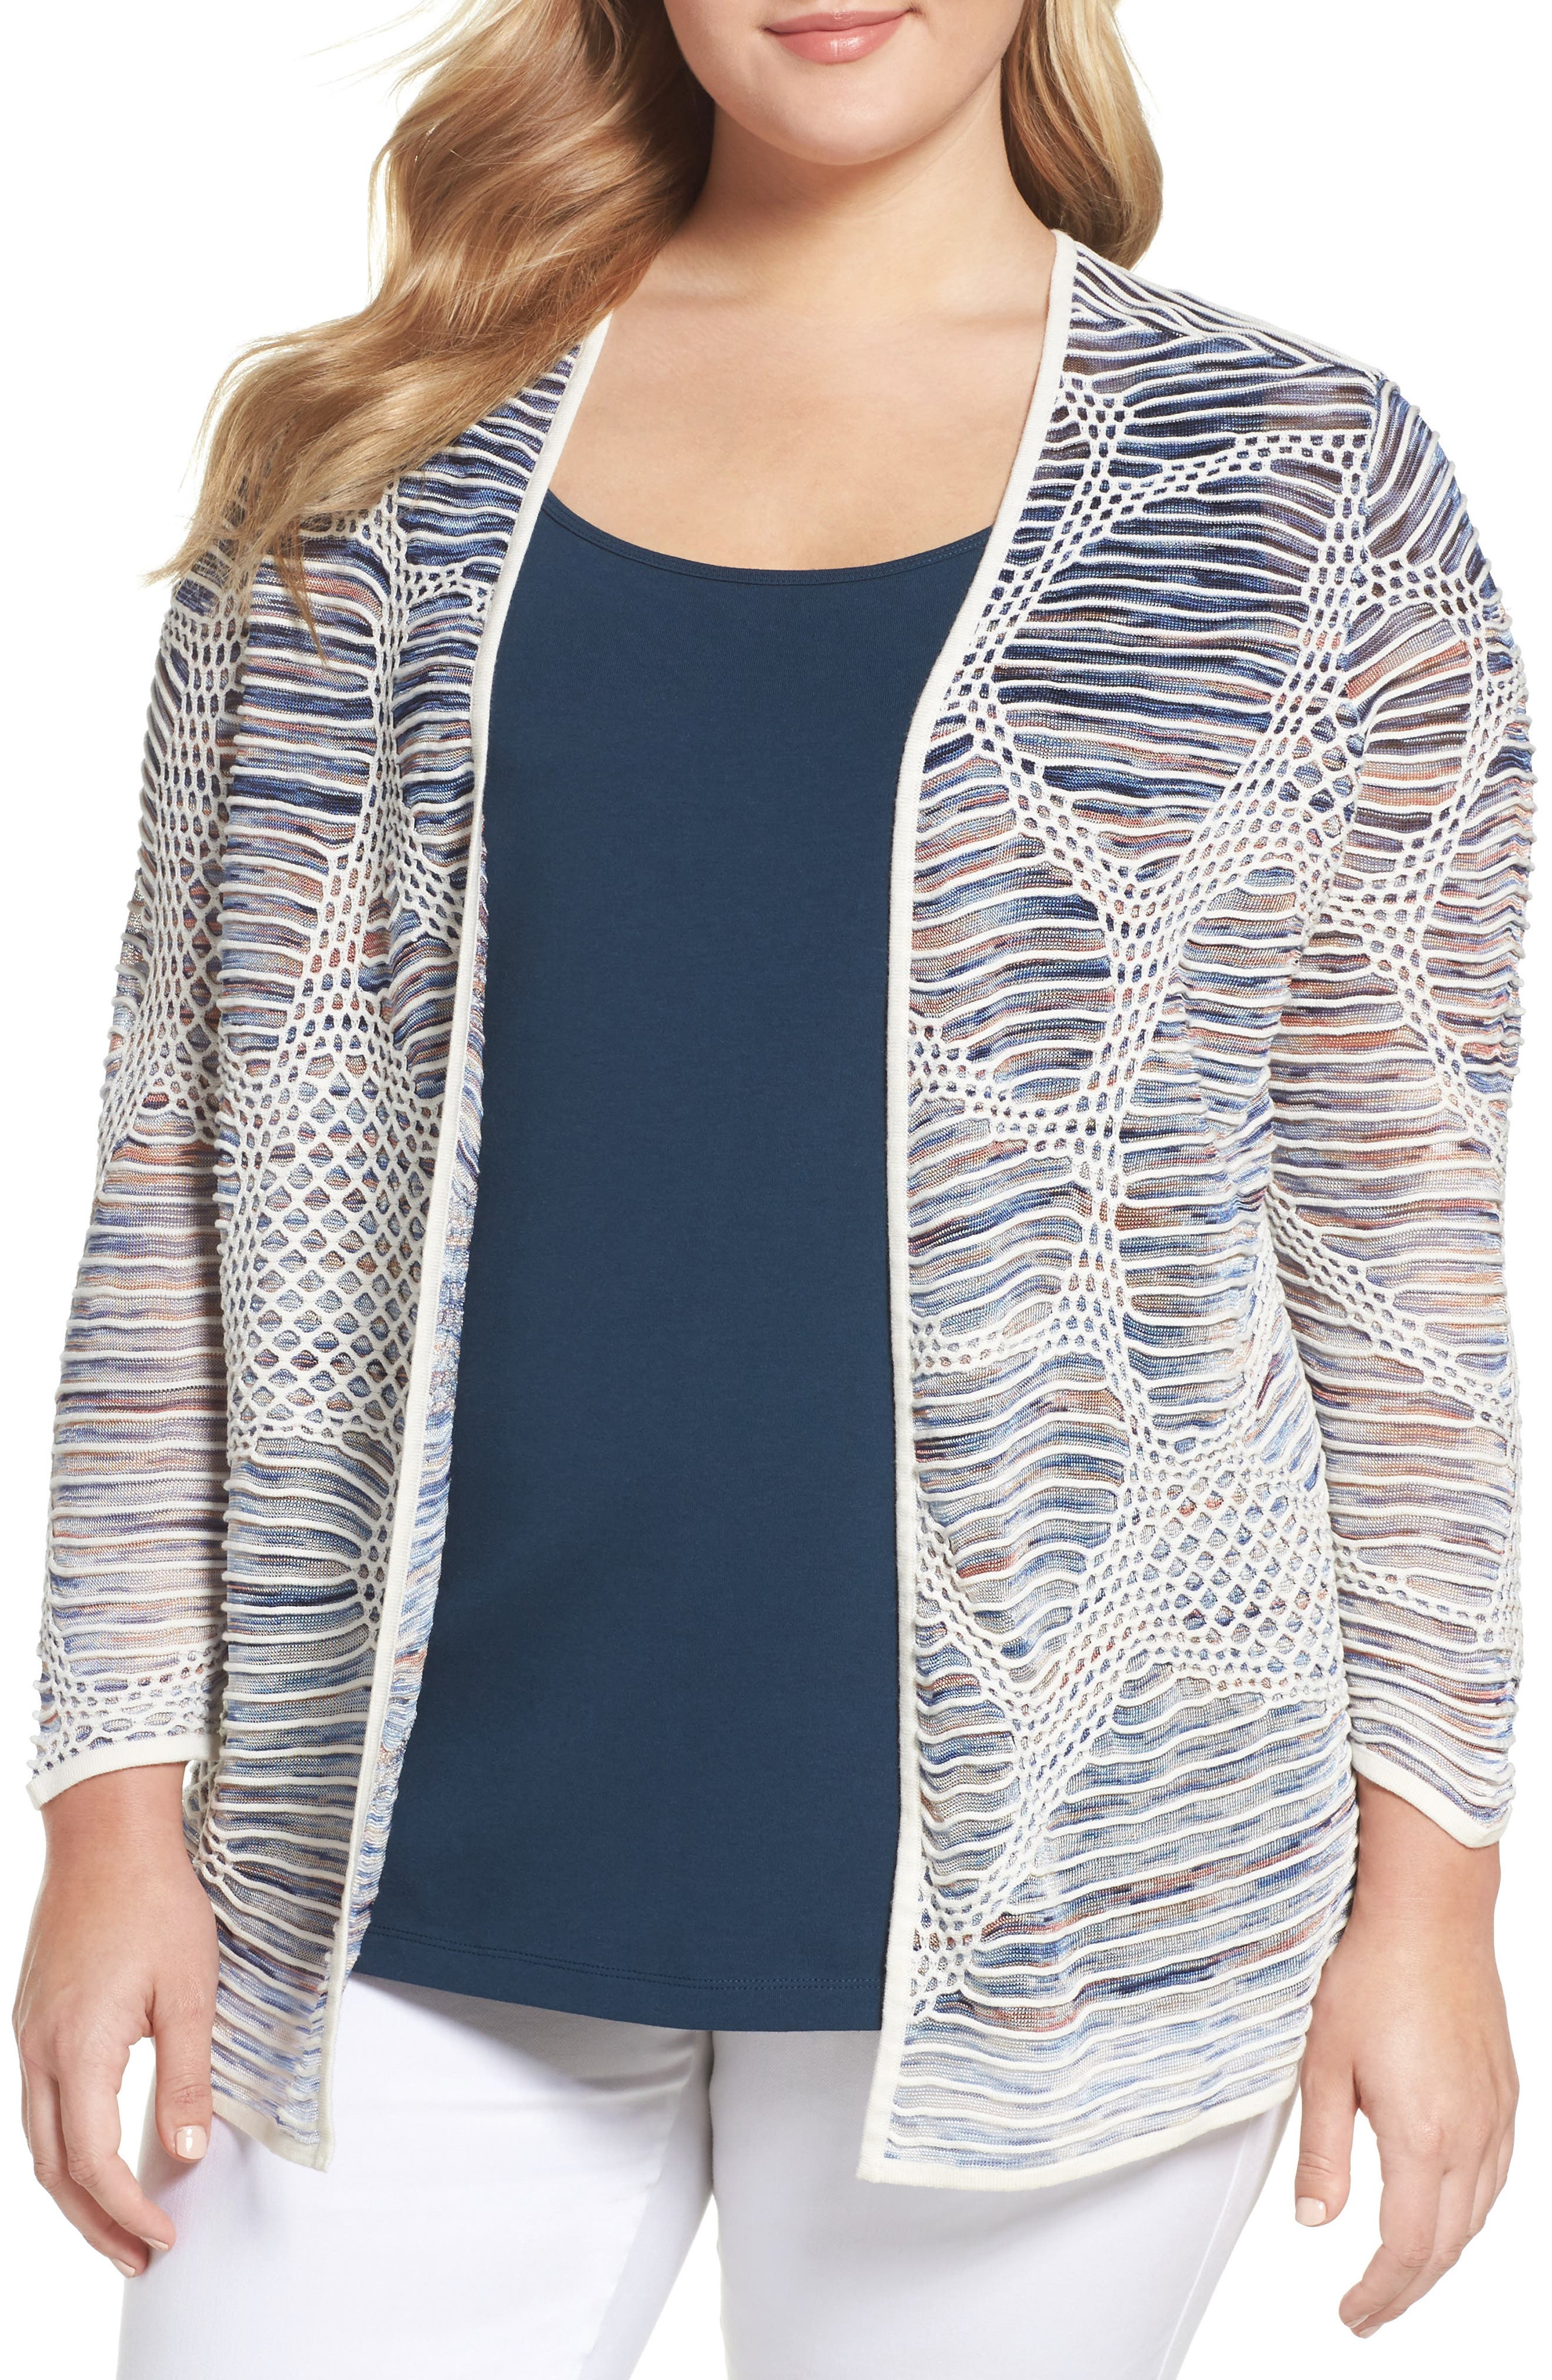 Wildflower Open Front Cardigan,                         Main,                         color, Multi